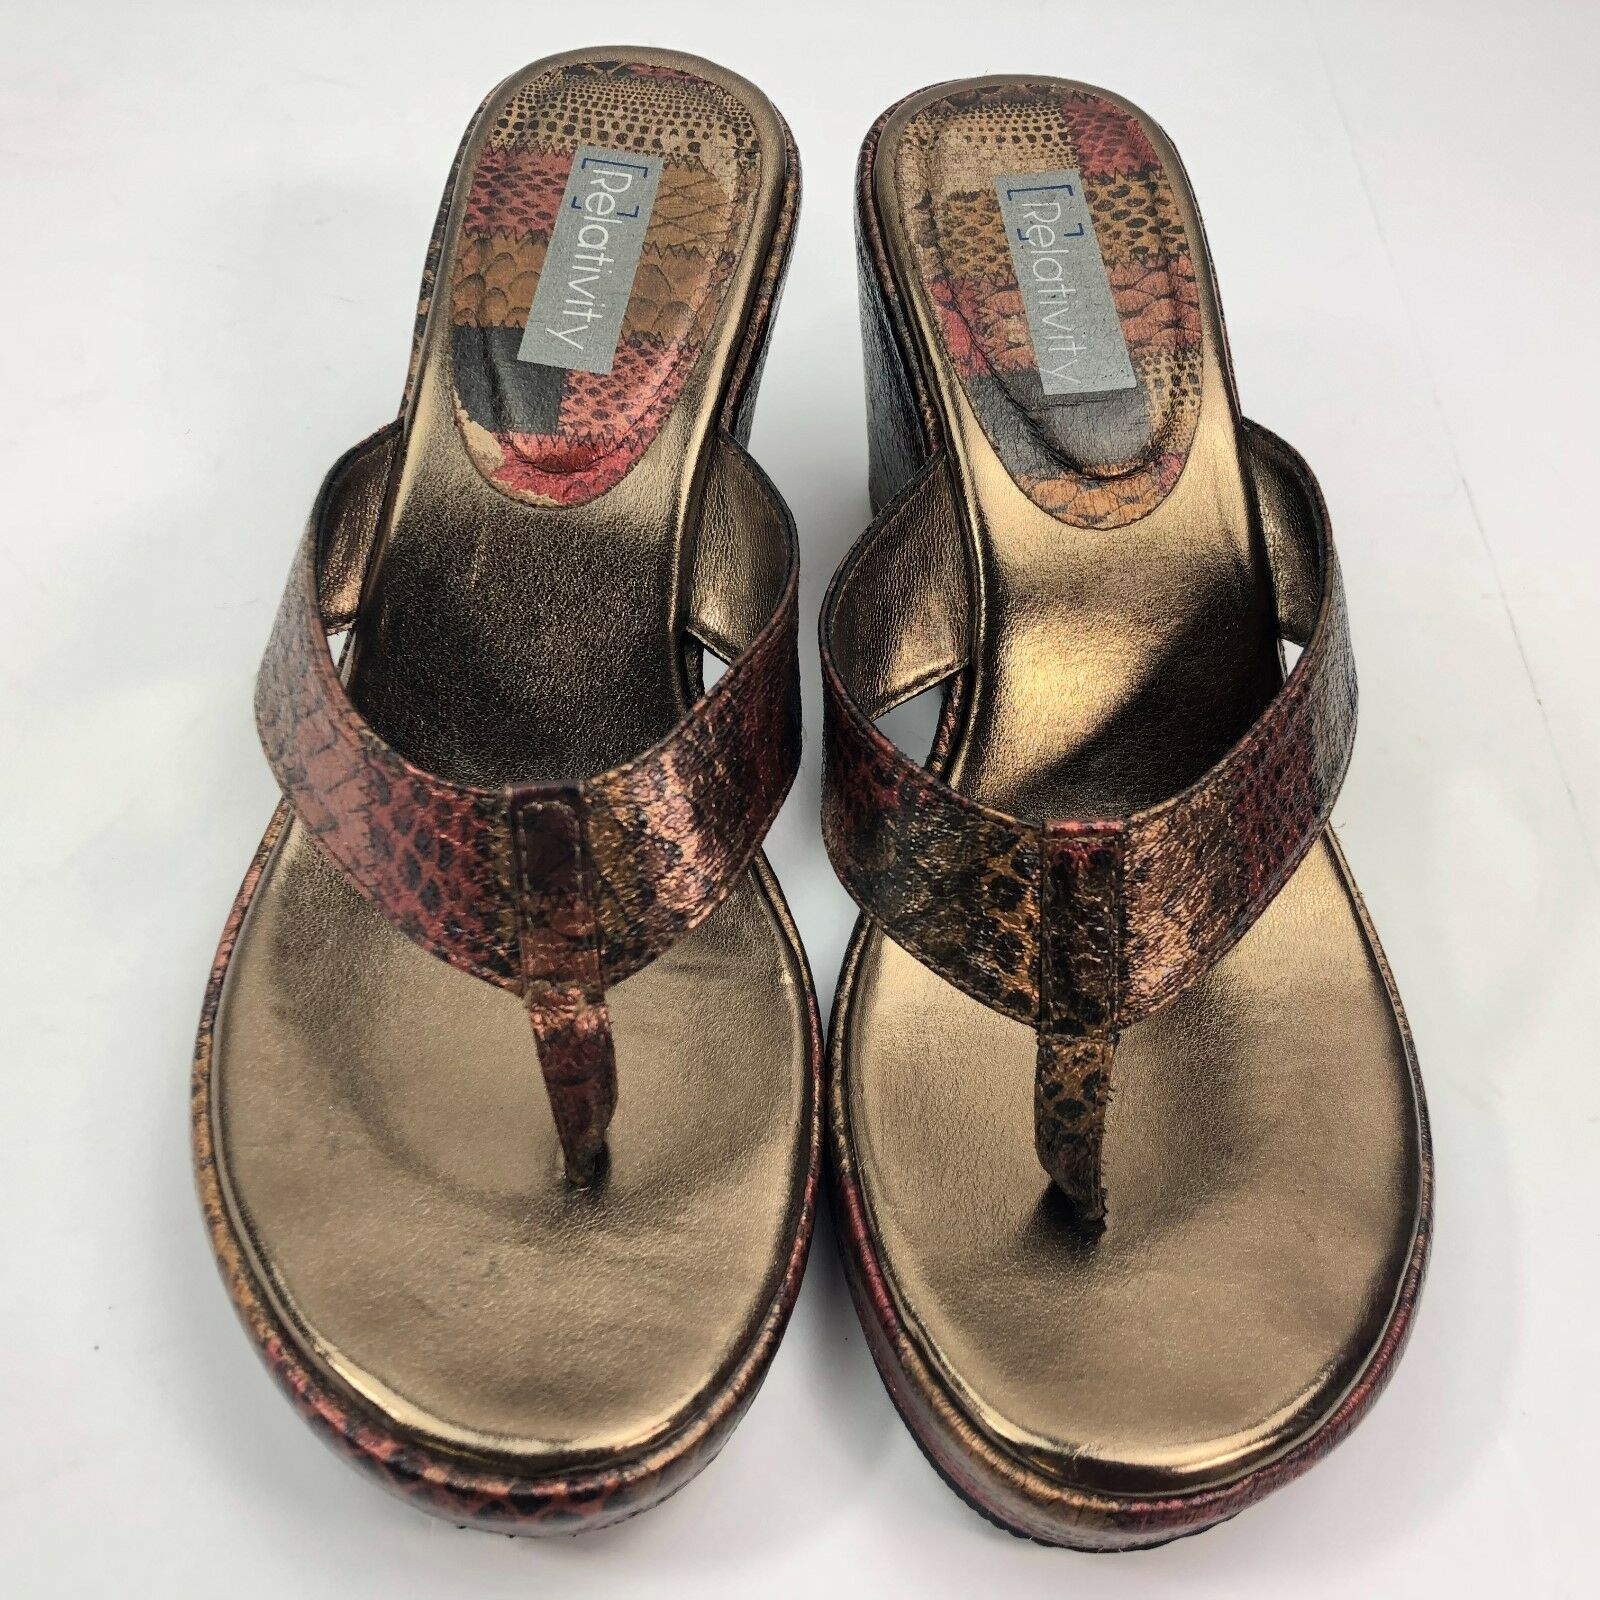 Relativity Wedge Heel Ladies Size Sandals Beautiful Copper/Red/Black  Size Ladies 7-8  A2003 56513b